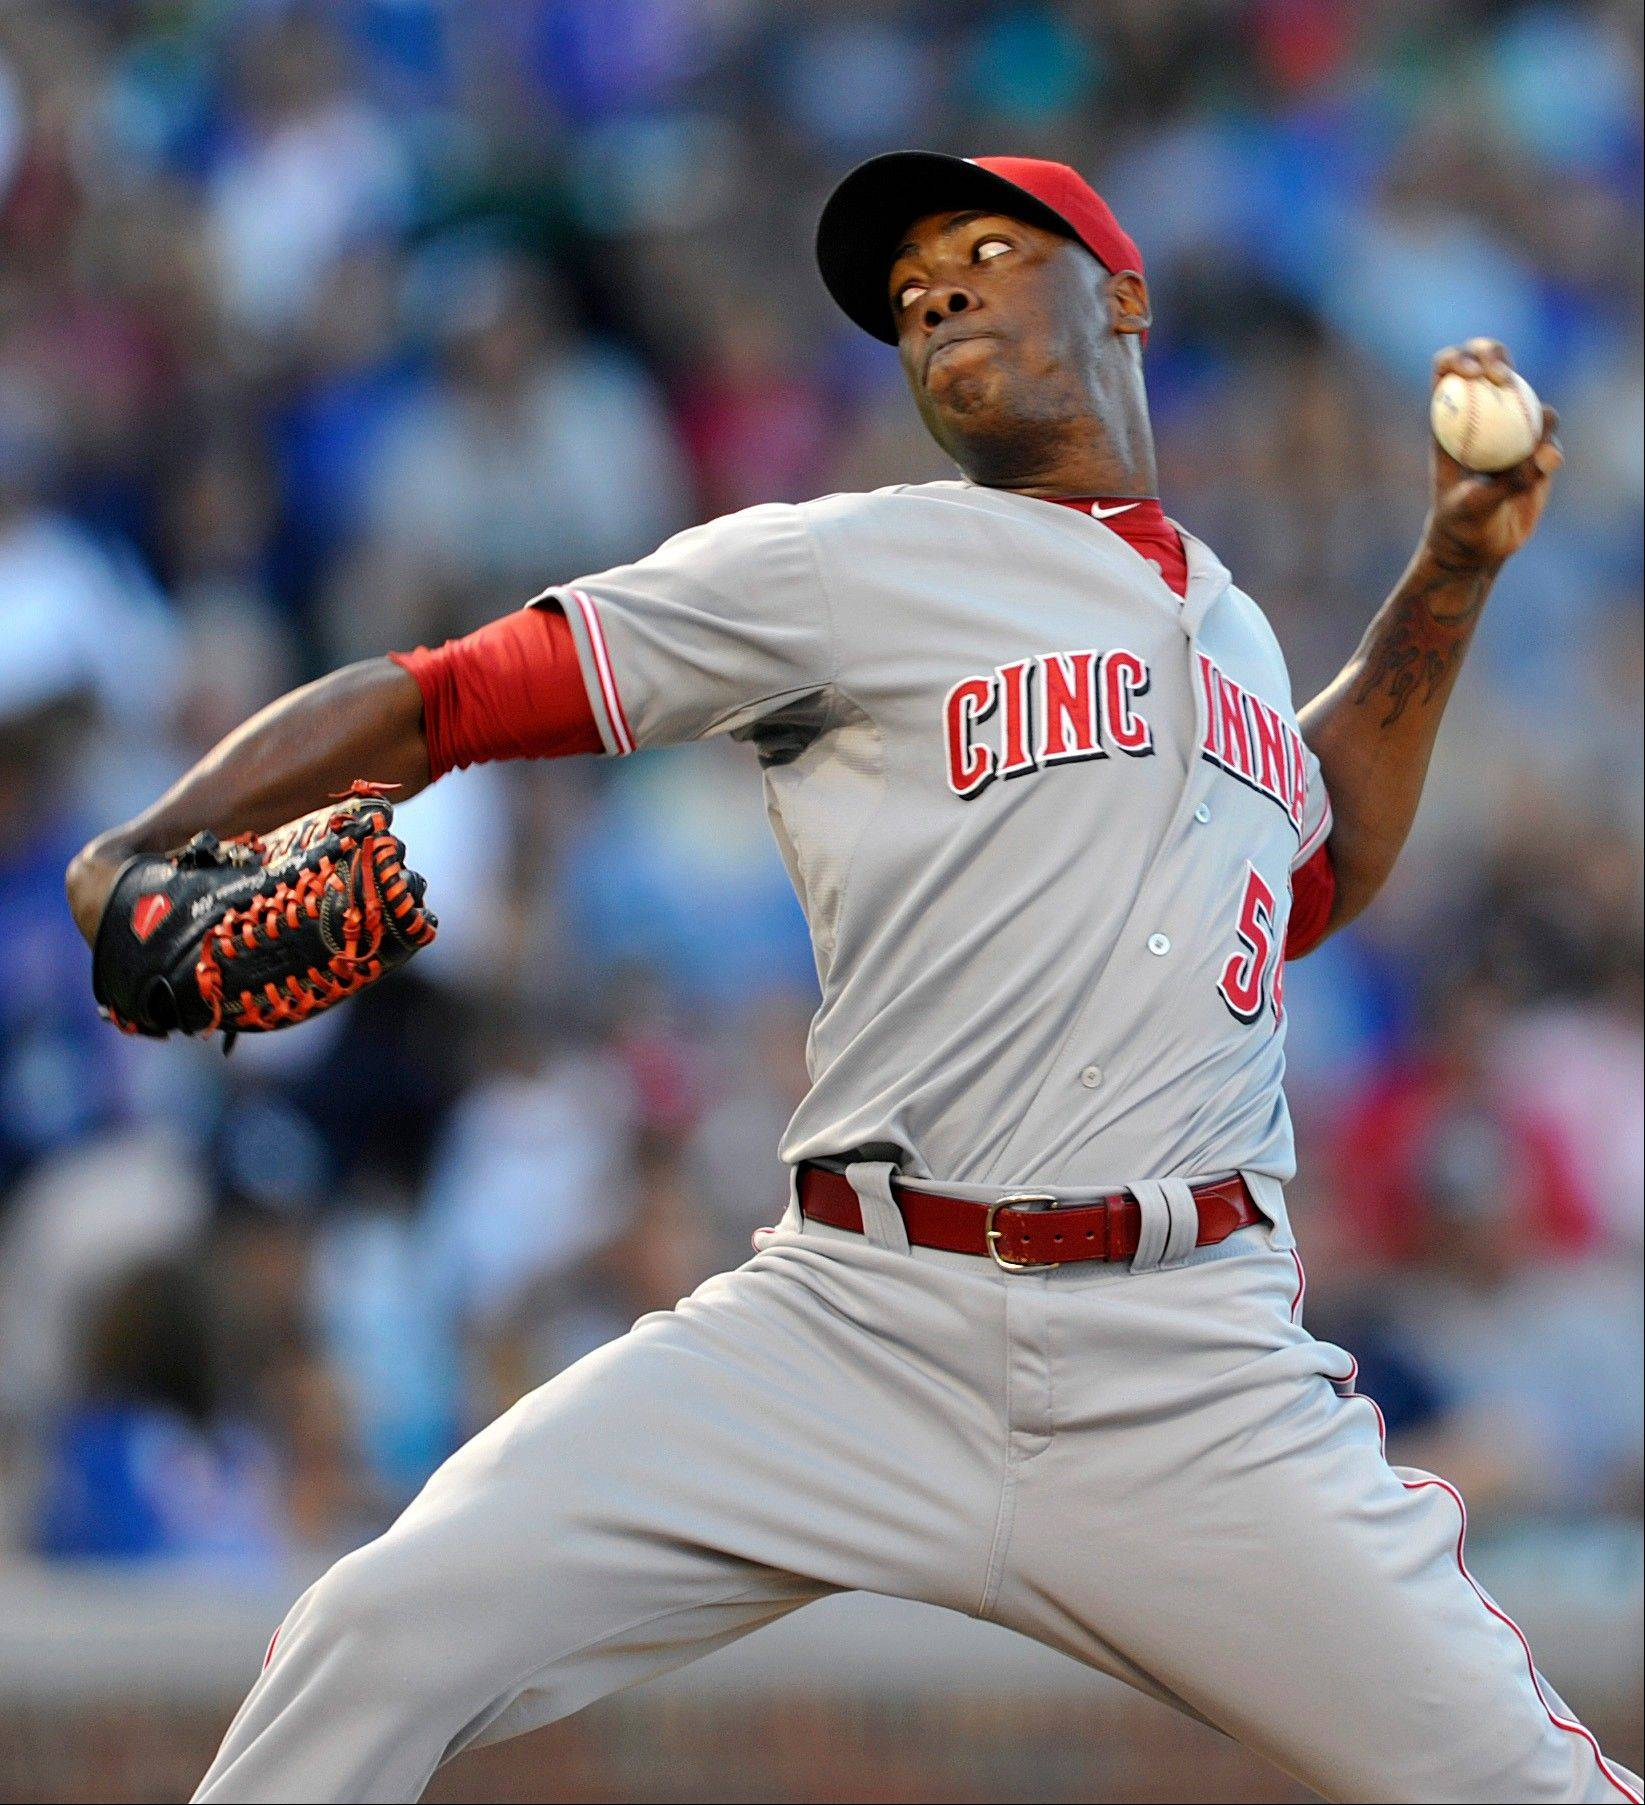 Cincinnati closer Aroldis Chapman has struck out 106 hitters in 57 innings this season.